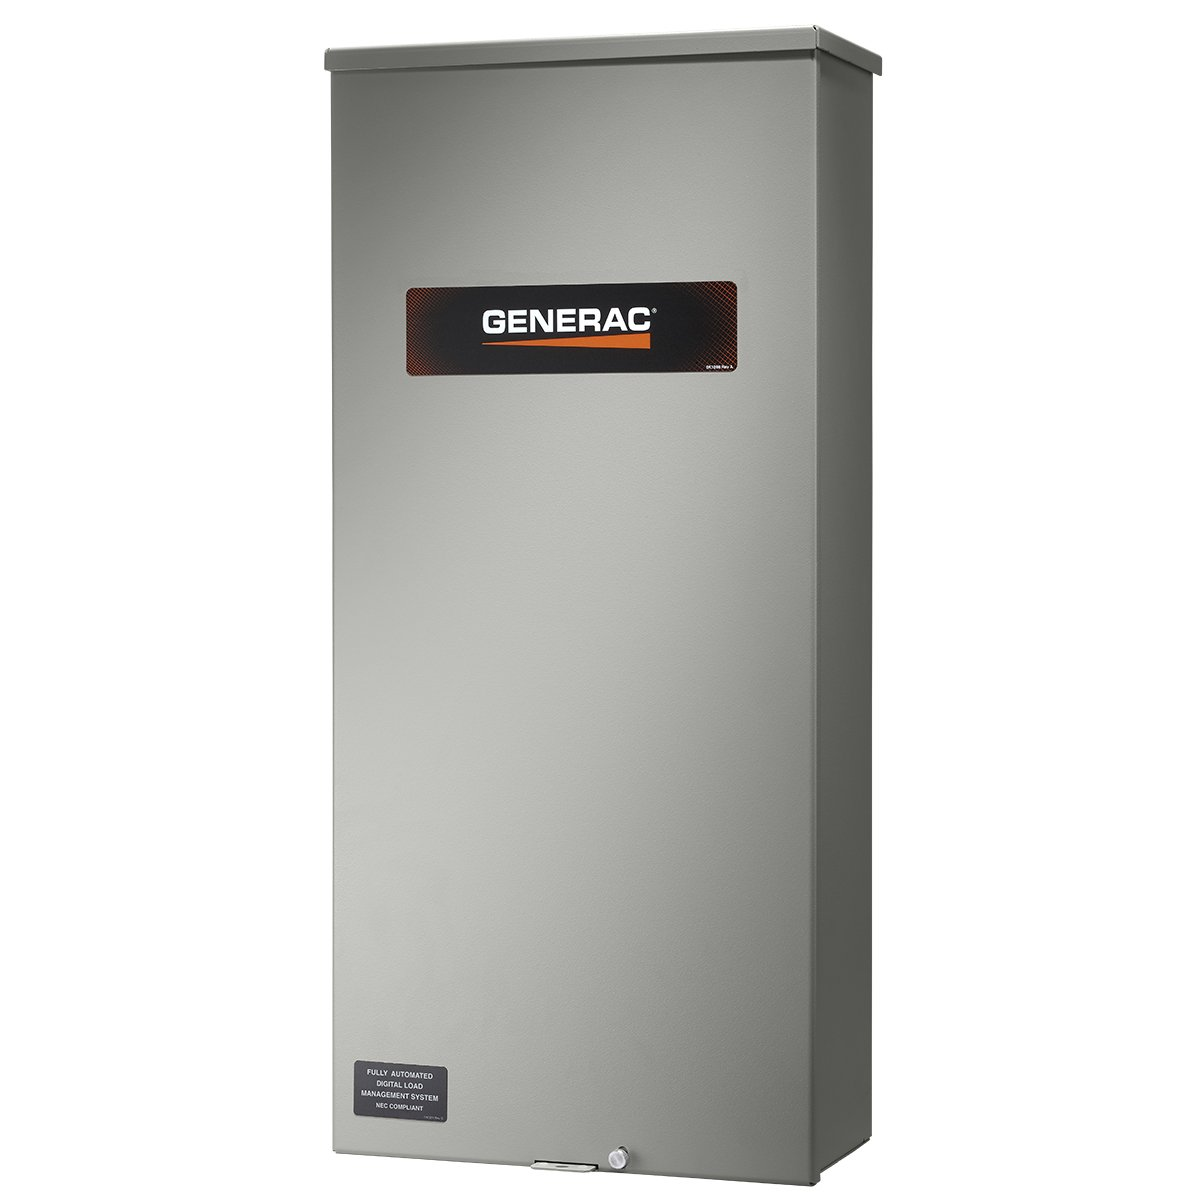 Generac RXSW100A3 100 Amp 120/240V Single Phase NEMA 3R Service Rated Automatic Transfer Switch for Standby Generators